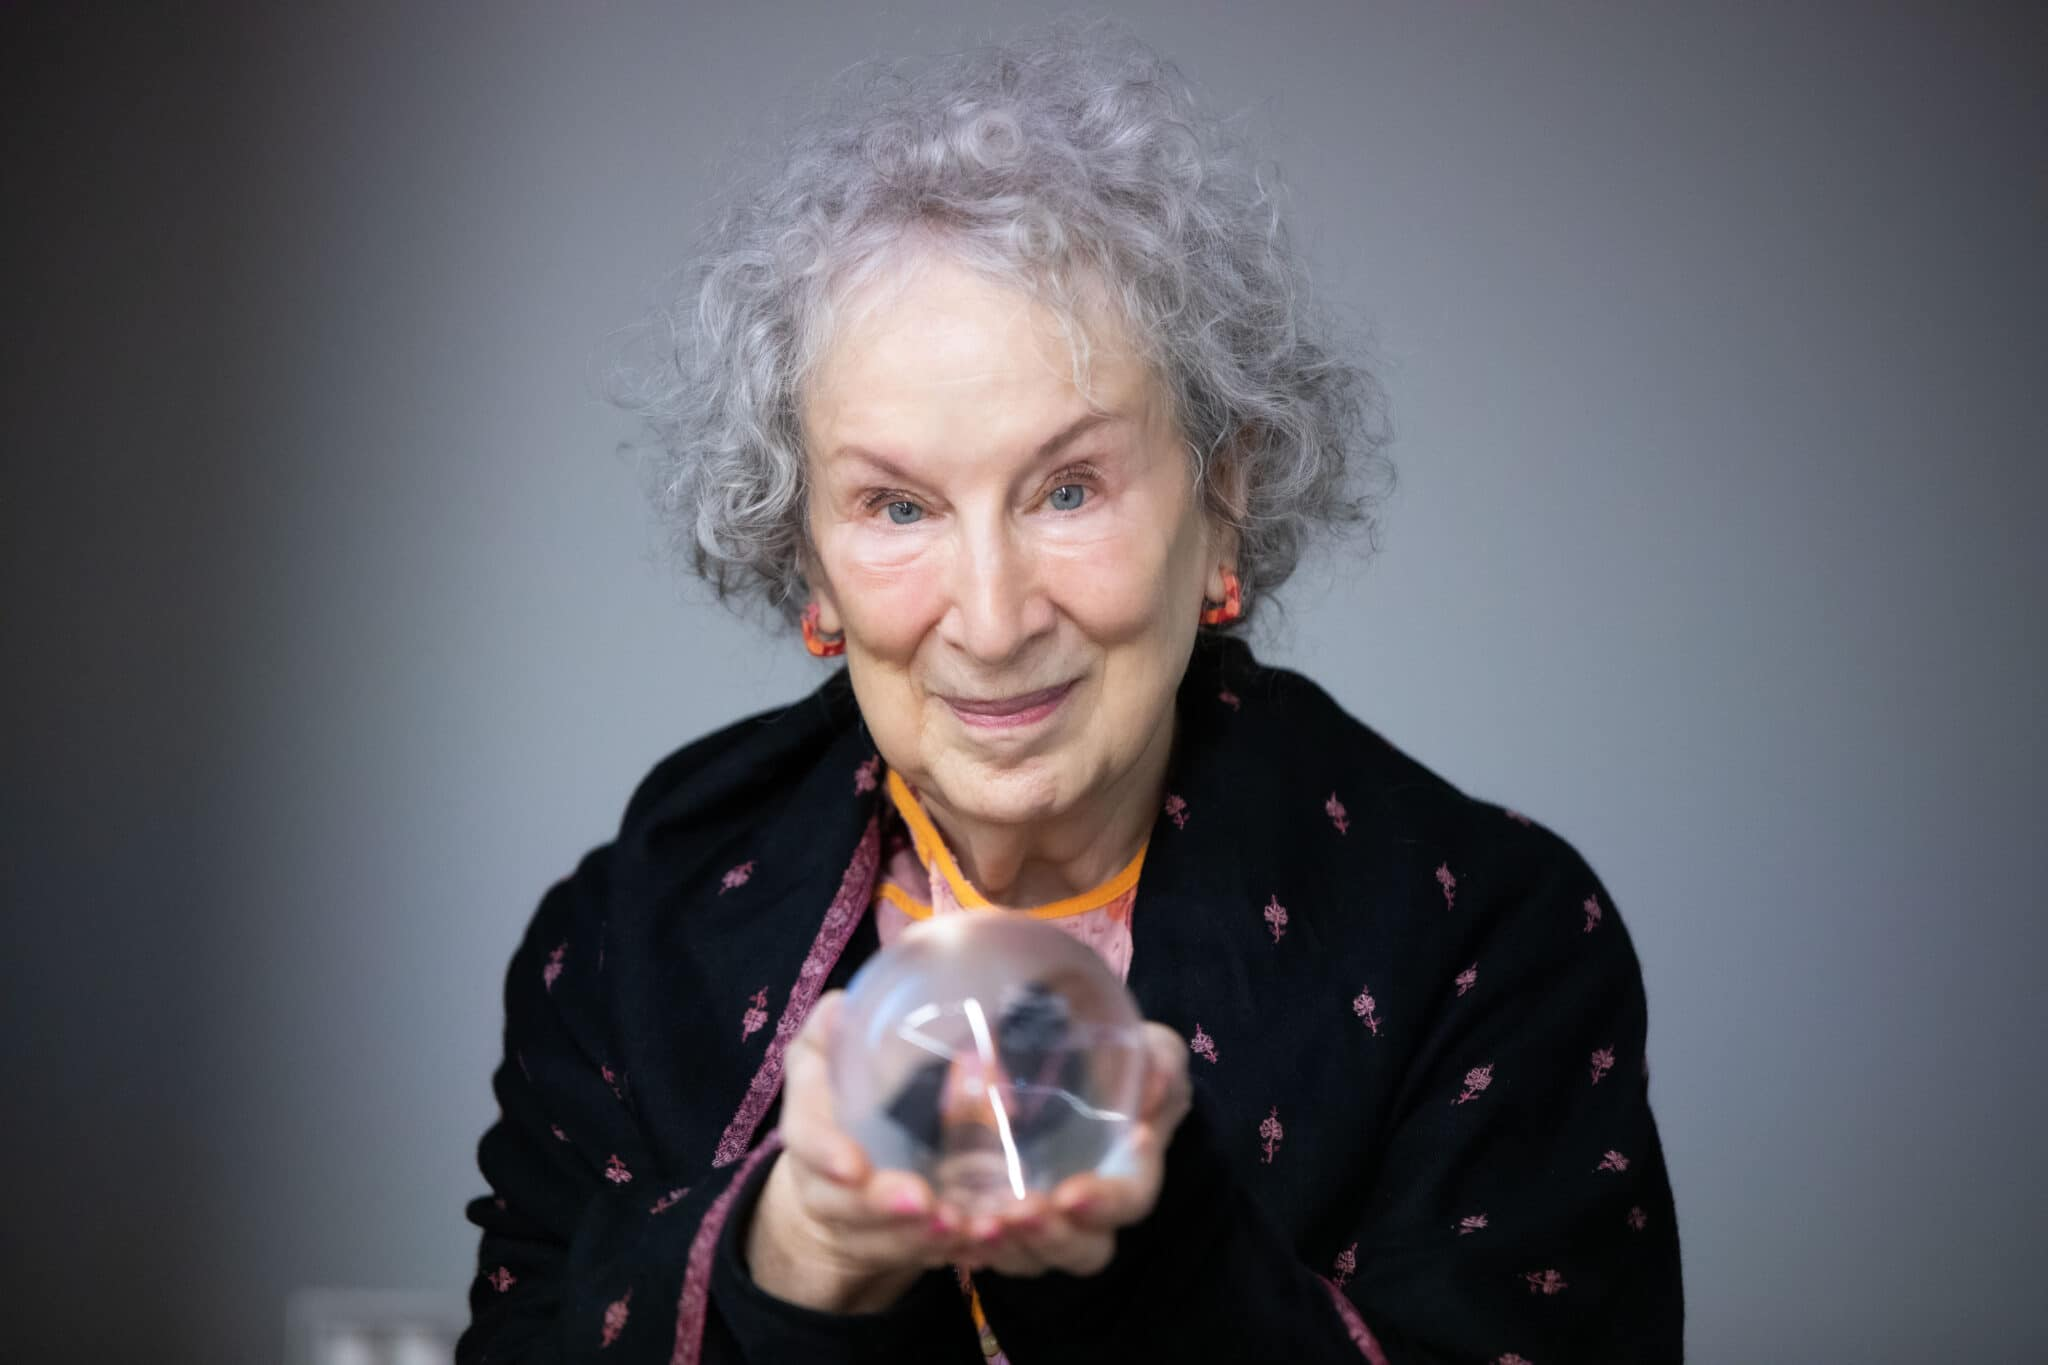 Margaret Atwood sparks anger with 'why can't we say woman anymore' tweet